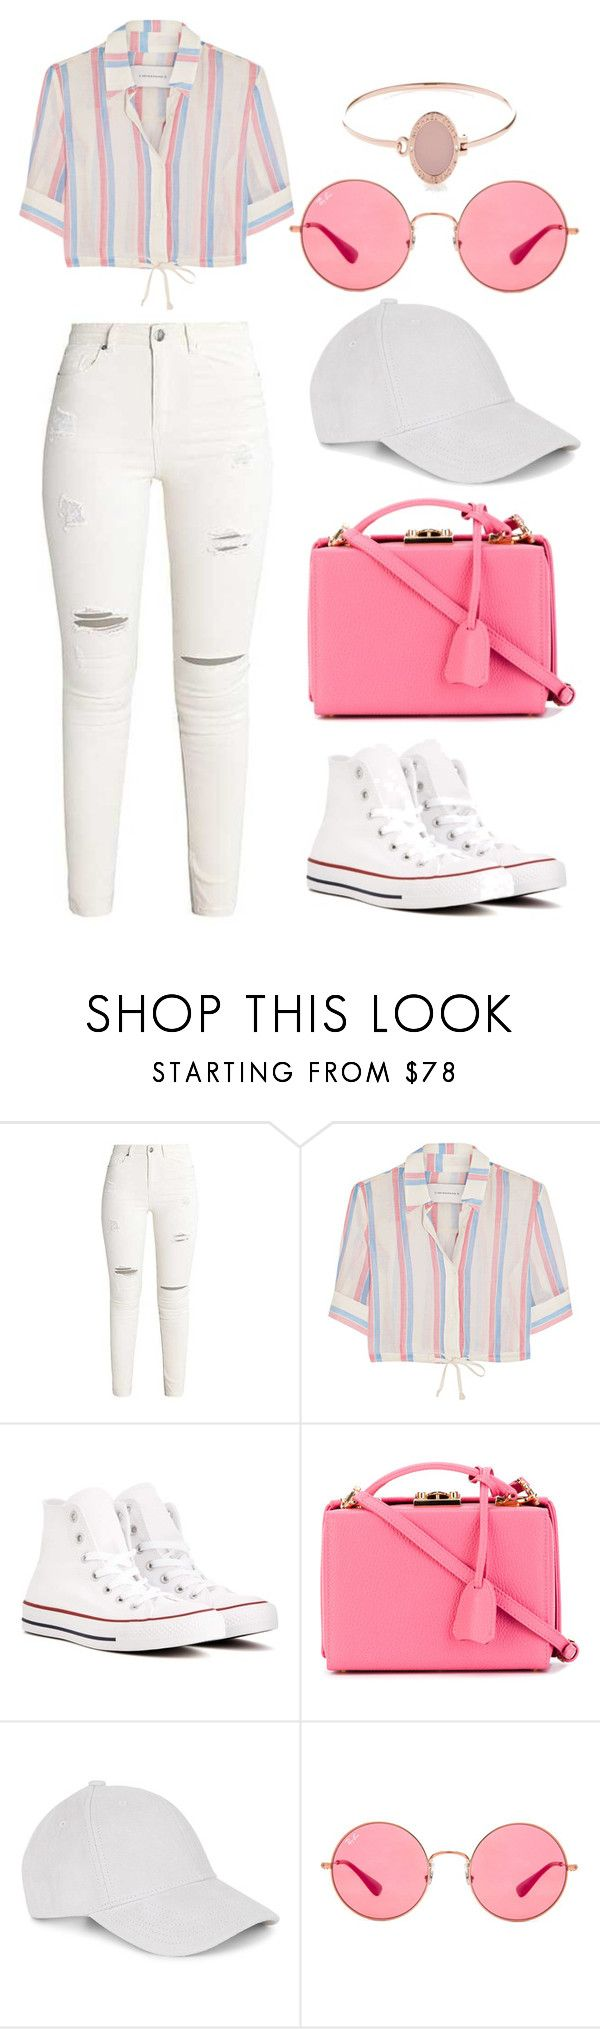 """Untitled #185"" by alibasicelma on Polyvore featuring Solid & Striped, Converse, Mark Cross, Ray-Ban and Michael Kors"